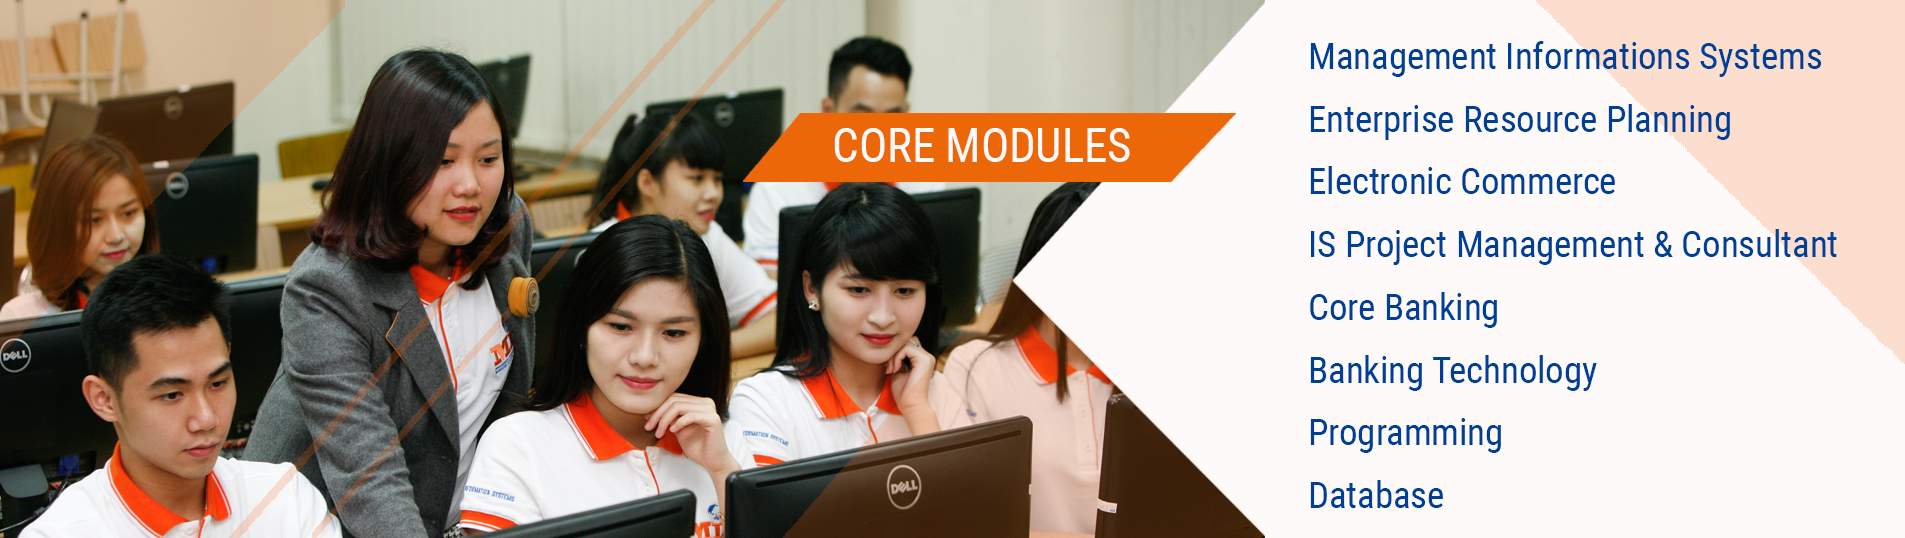 Core_Modules_SinhVien1_